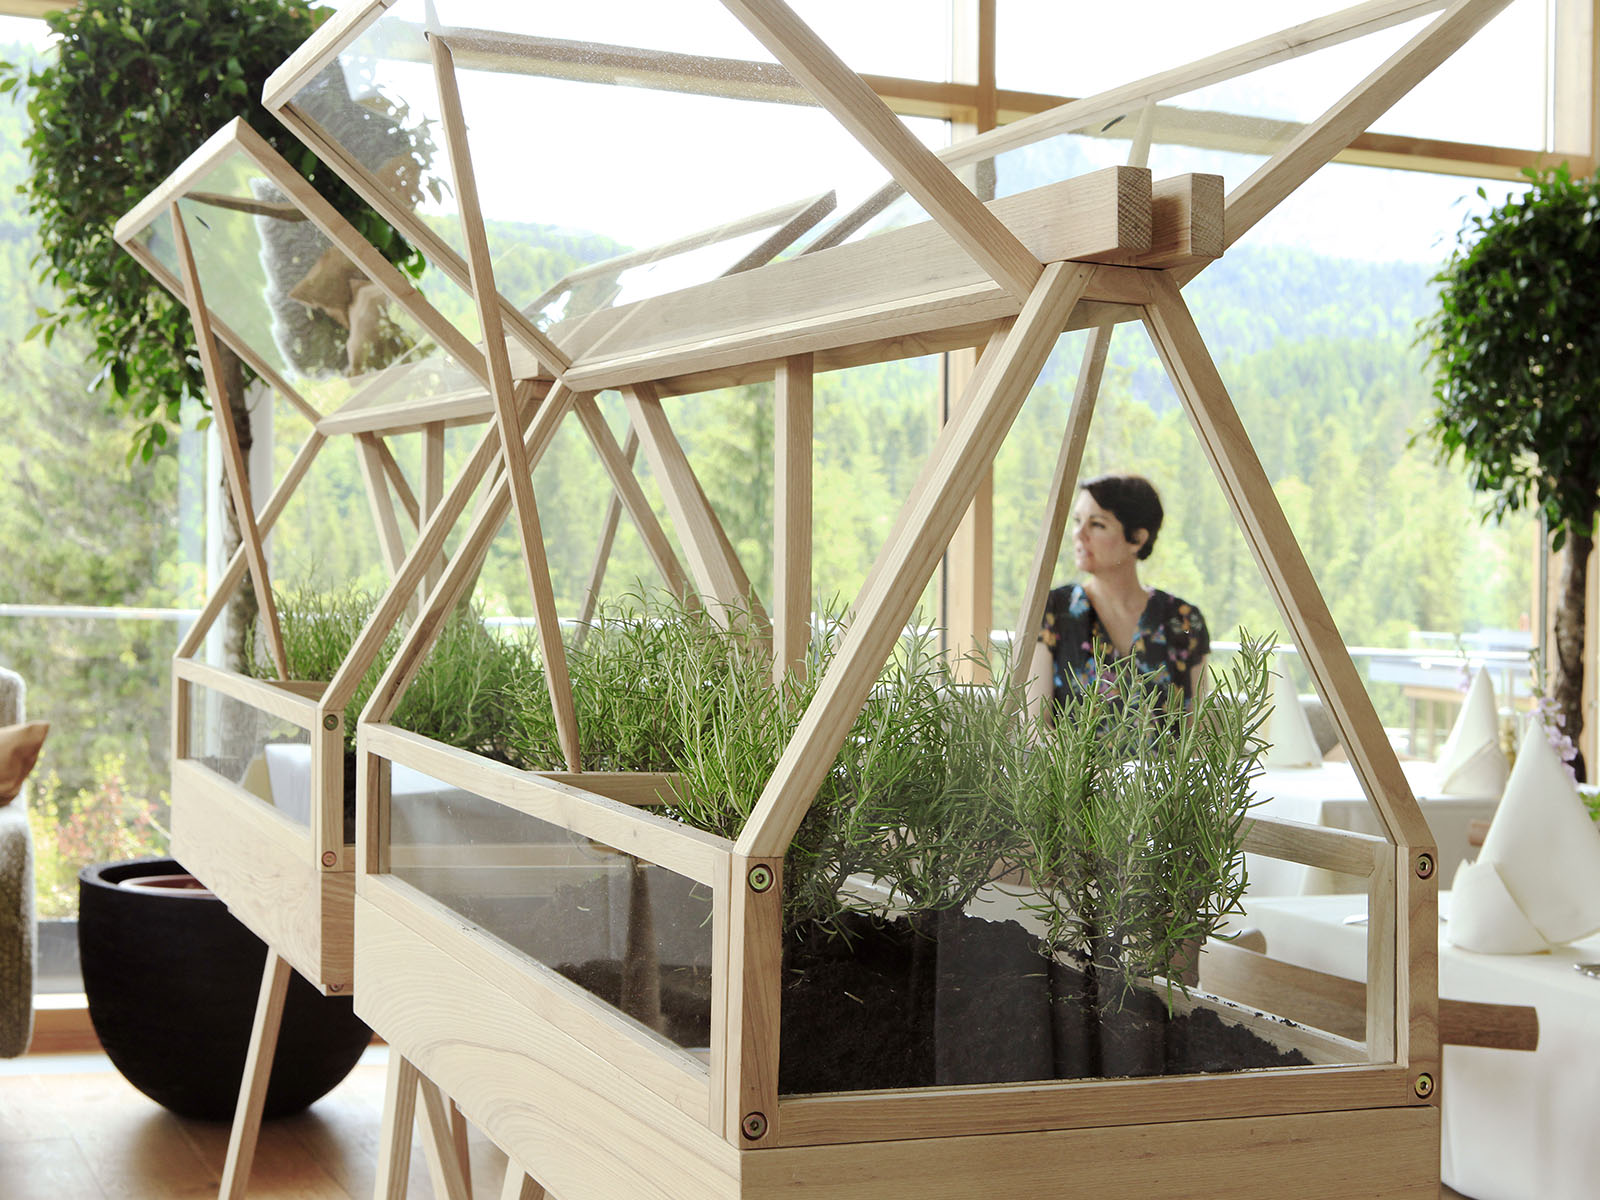 Greenhouse at the spa resort Das Kranzbach in Germany